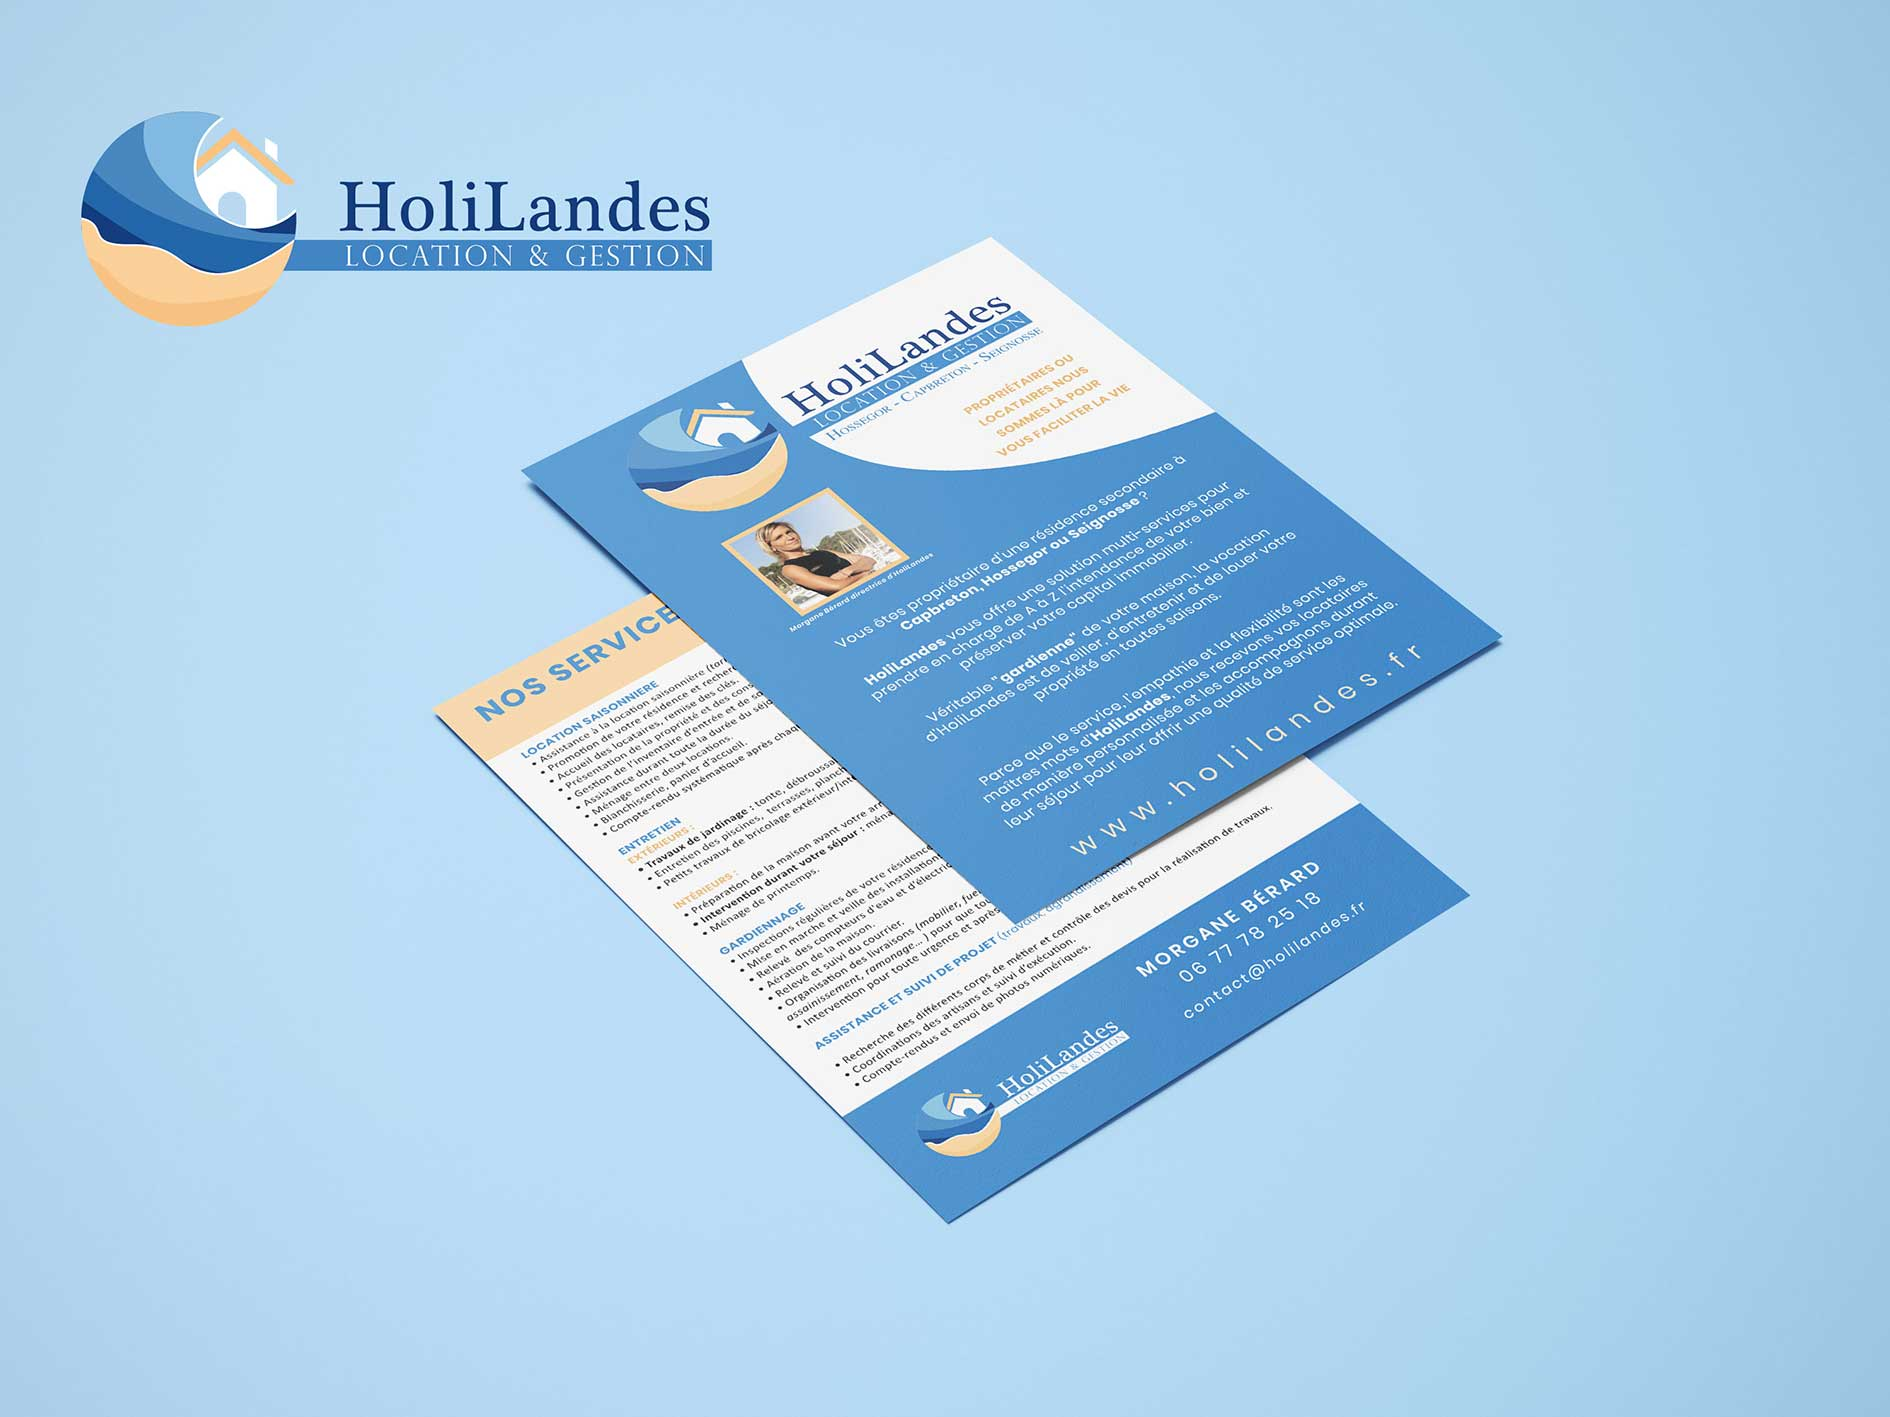 holilandes-hossegor-locationvacances-hossegor-capbreton-skoncommunication-flyer-concierge